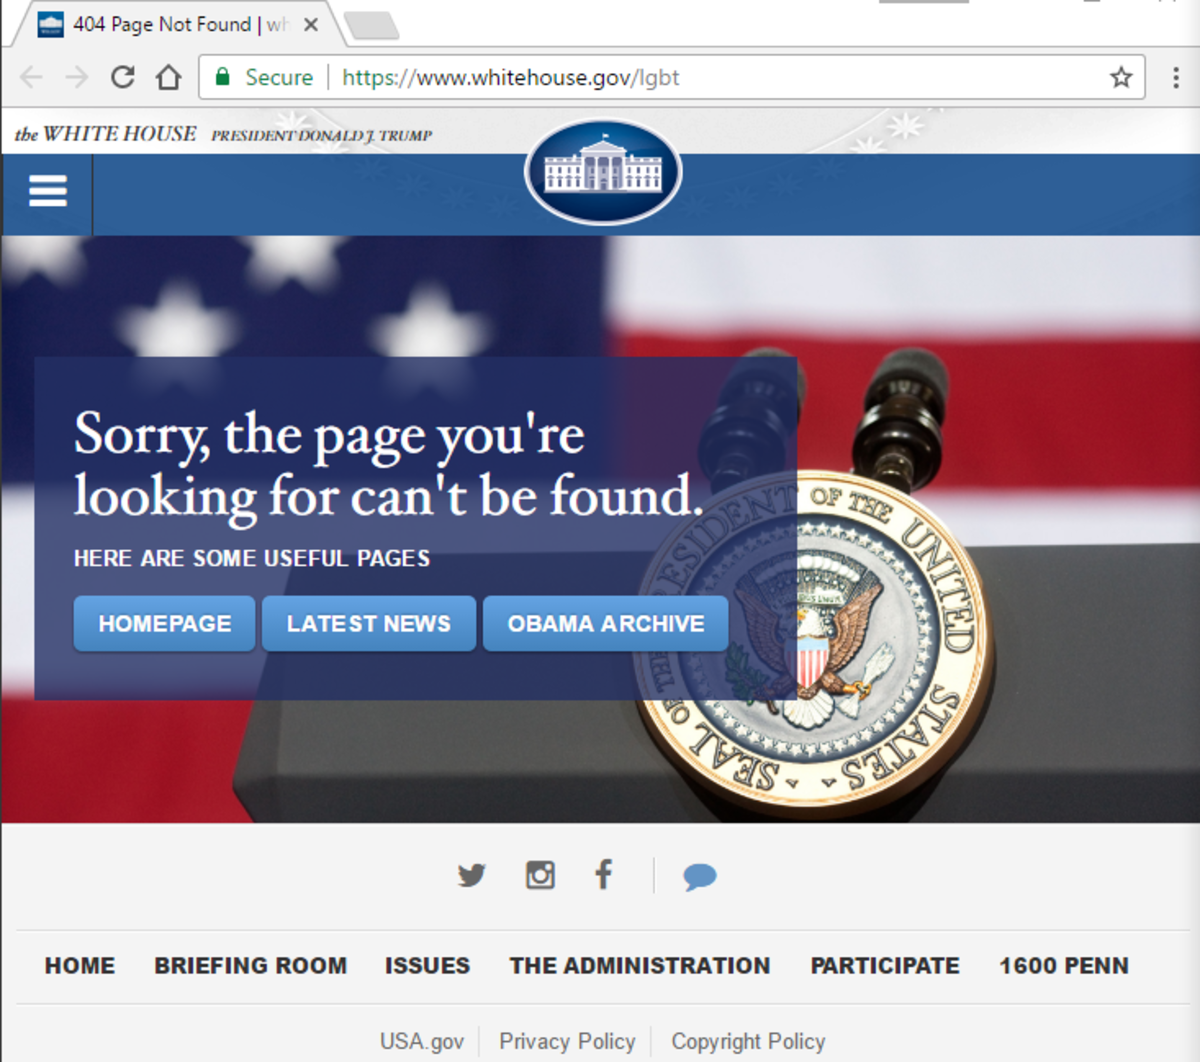 A screen capture from the current WhiteHouse.gov website